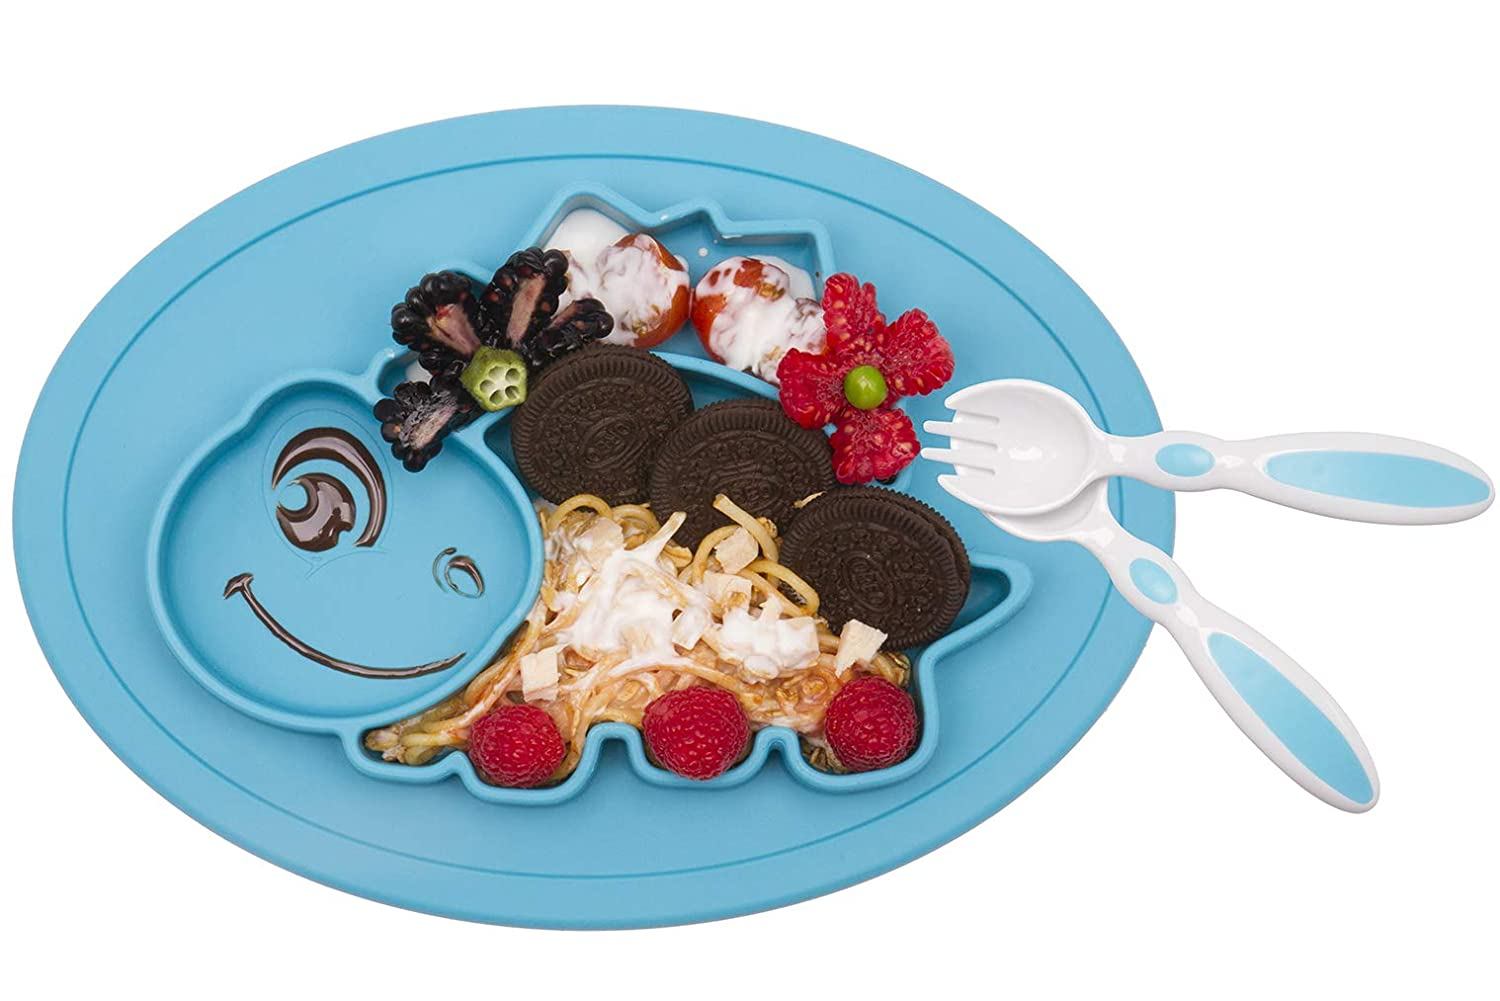 Baby Silicone Placemat, Non-Slip Feeding Suction Plate for Toddlers Babies Kids Fits Most Highchair Trays BPA-Free FDA Approved, Dishwasher and Microwave Safe with Spoon and Fork Novos